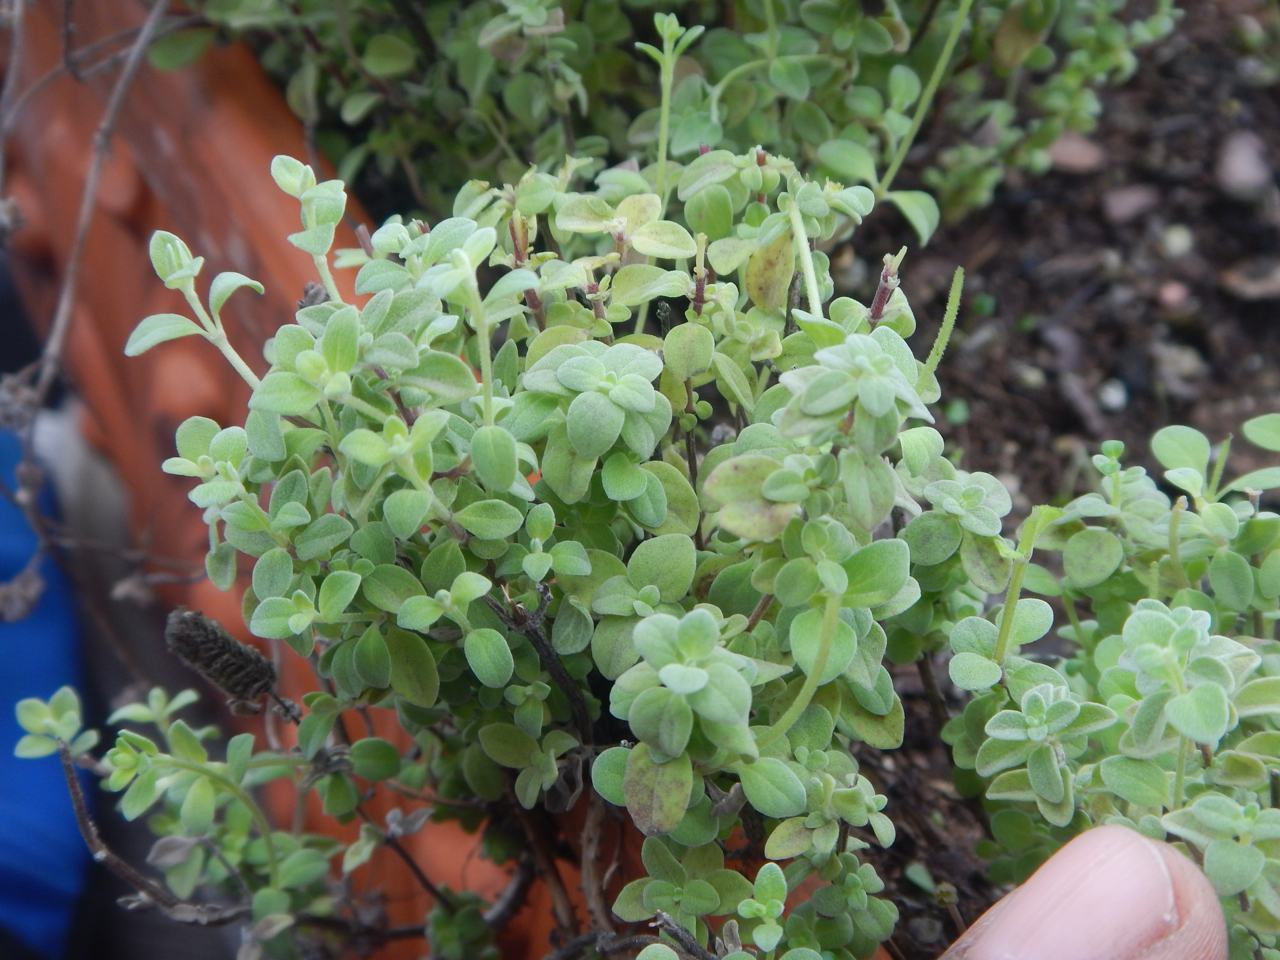 Herb Award 2018 Mossies  Marjoram ( Oregano majorana )  My favorite herb. To my wife's chagrin, I use it on everything. Marjoram has a mild sweet flavor compared to its more pungent siblings oregano and Za'atar. Marjoram grows well in ground or containers, and attracts beneficial insects to the garden. Harvest regularly for the best tasting leaves. Dry thoroughly. Store in glass containers. As a tender perennial, it is also much less aggressive than oregano.